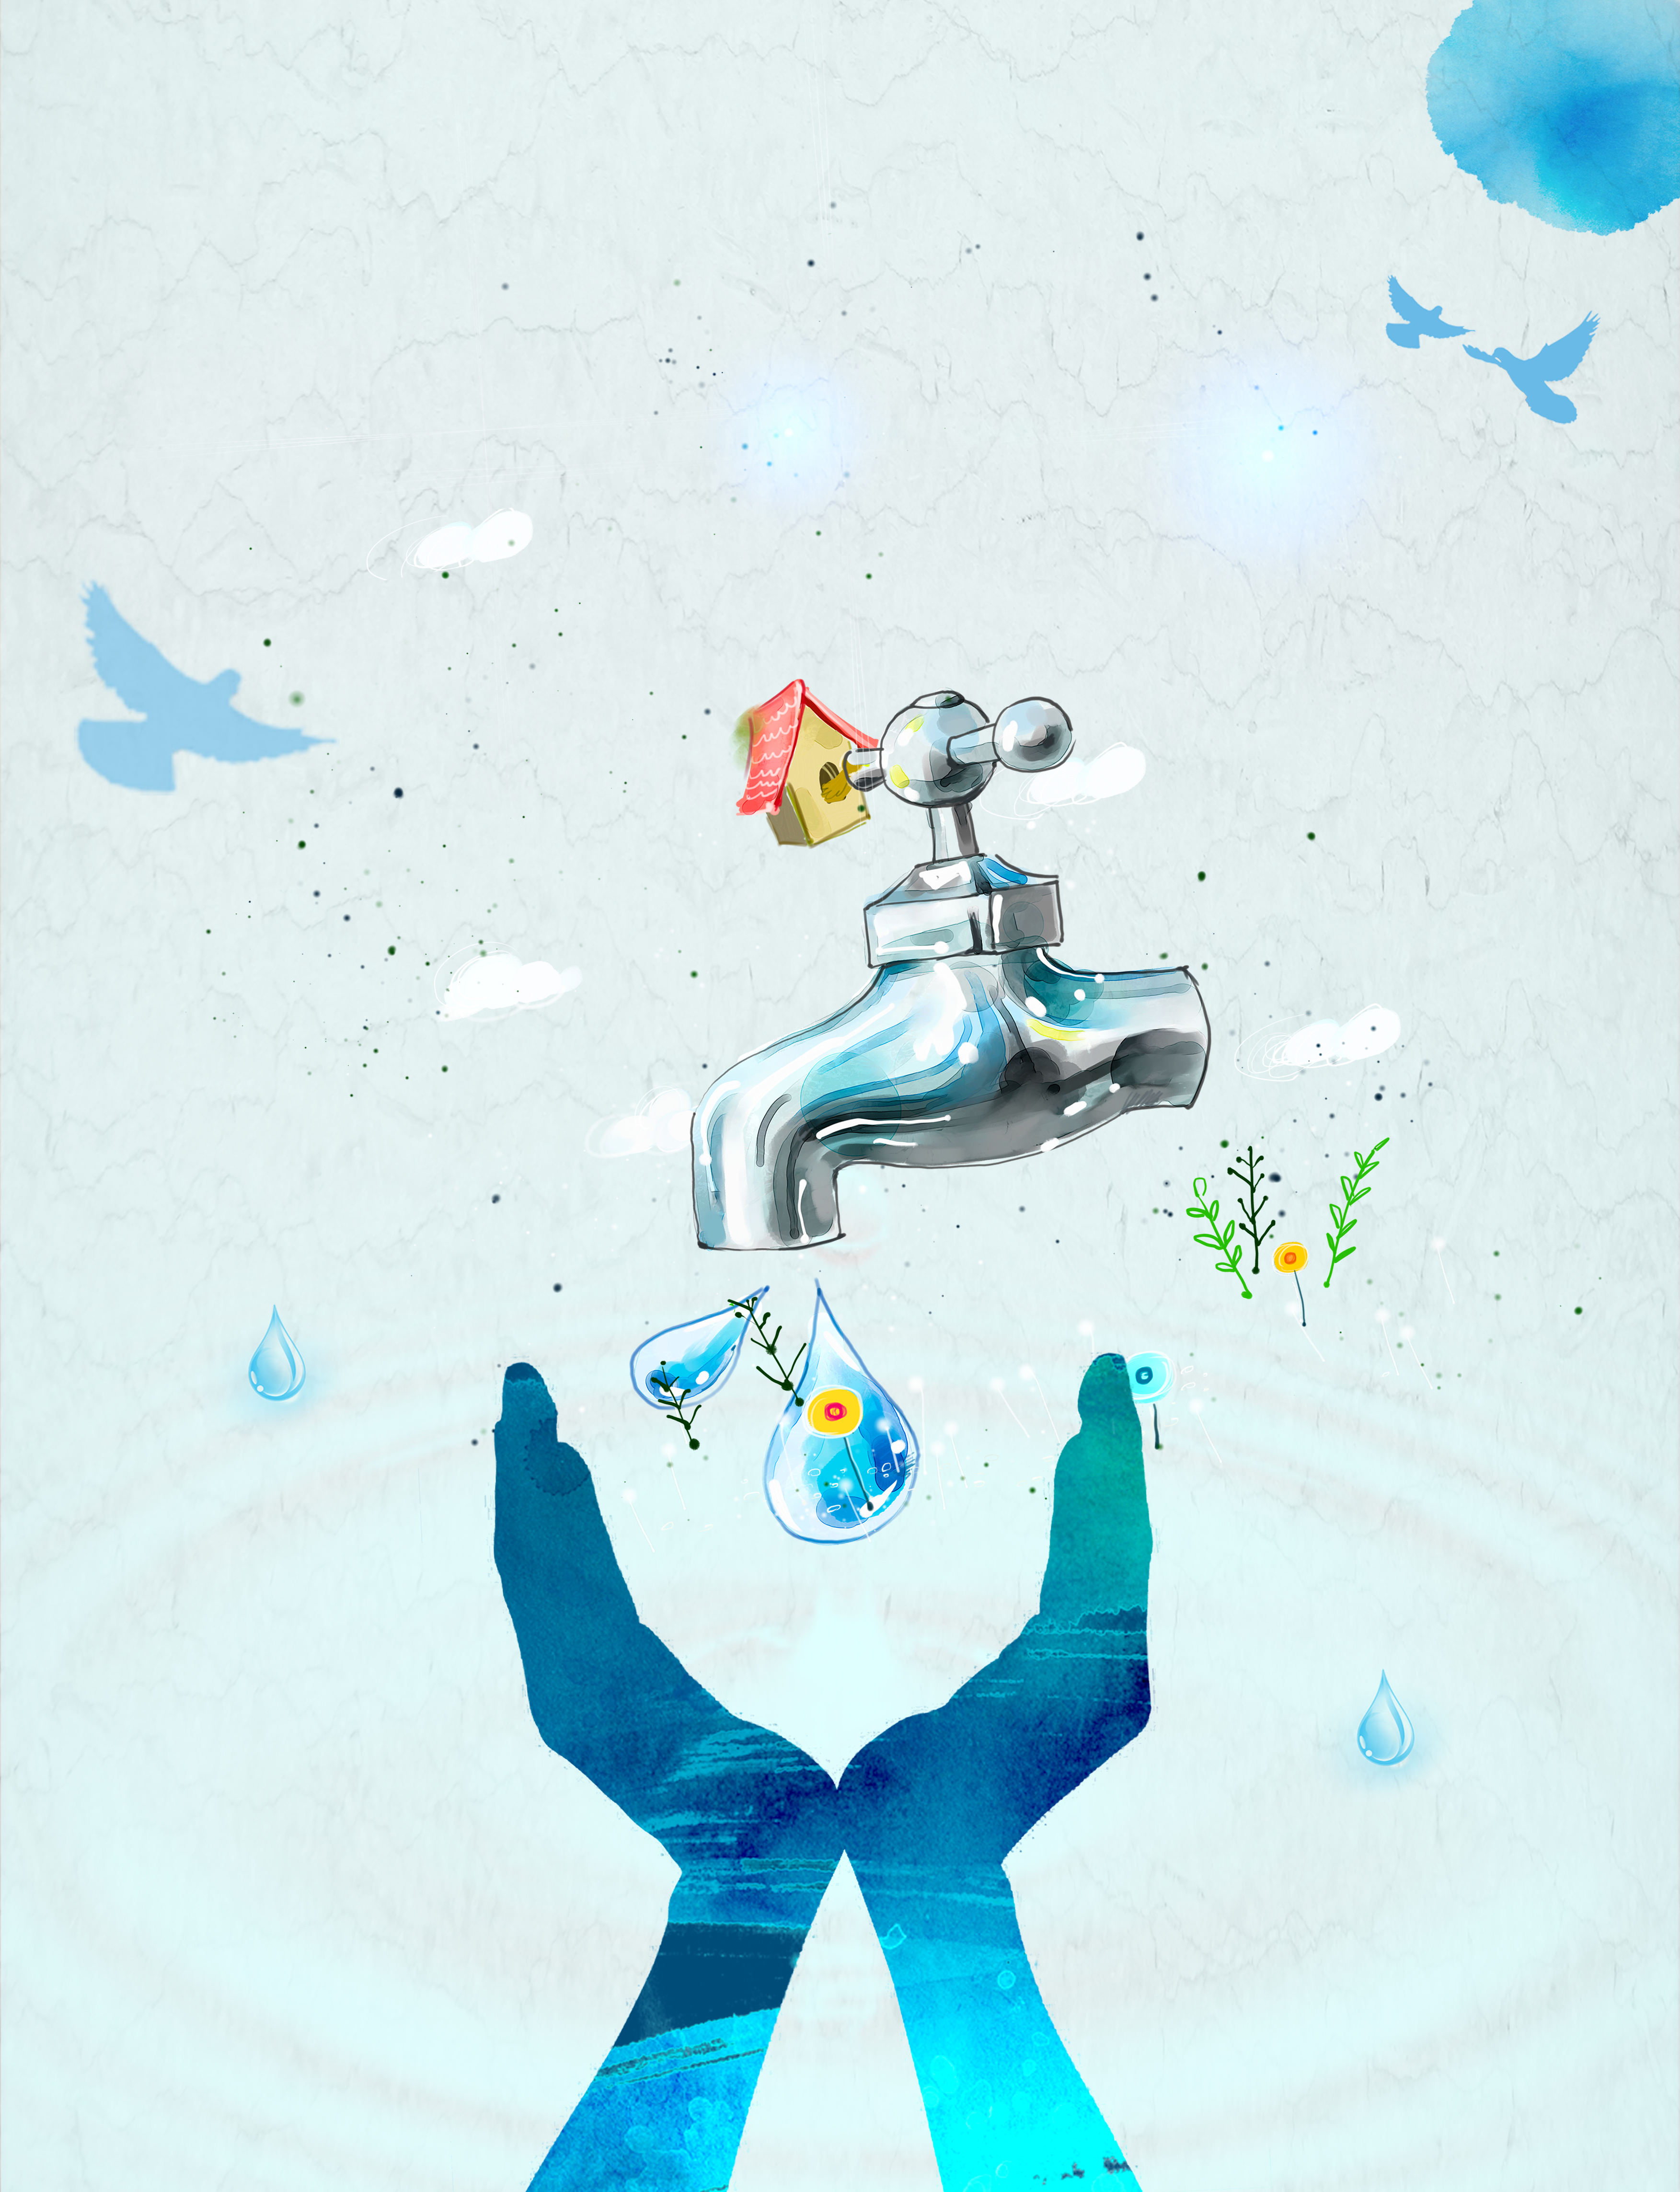 save water watercolor poster background material  conserve